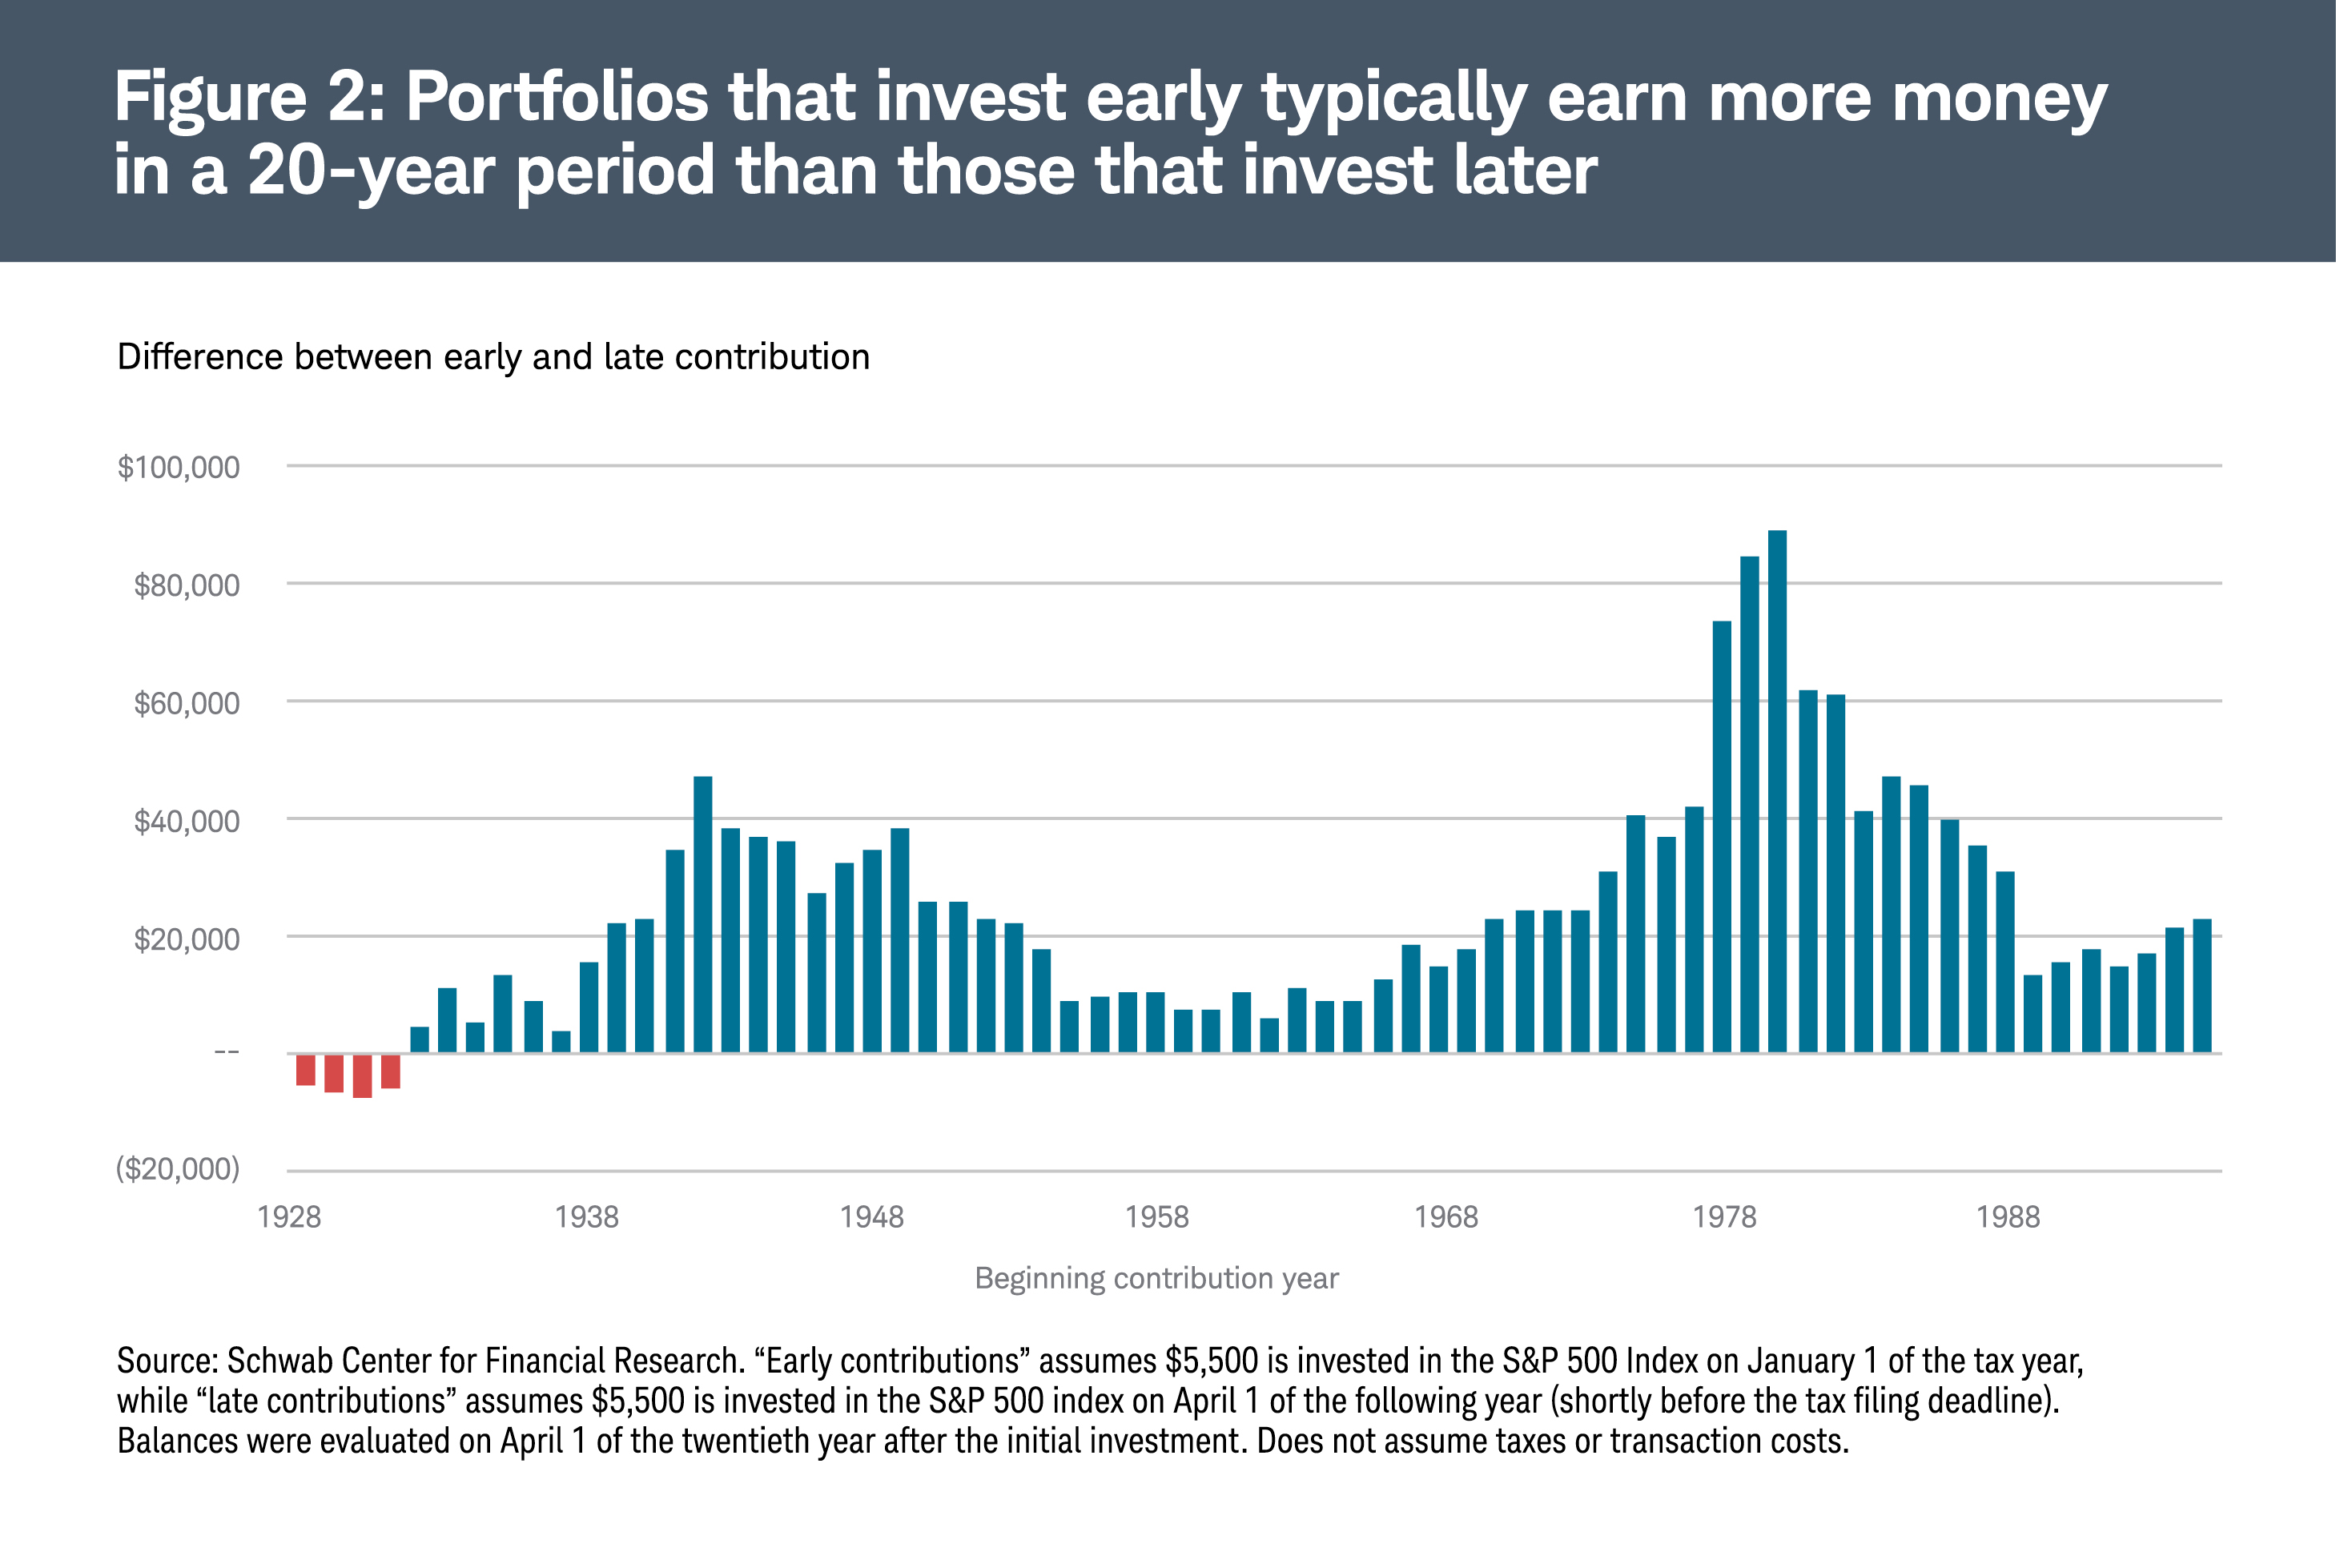 Portfolios that invest early typically earn more money in a 20-year period than those that invest later